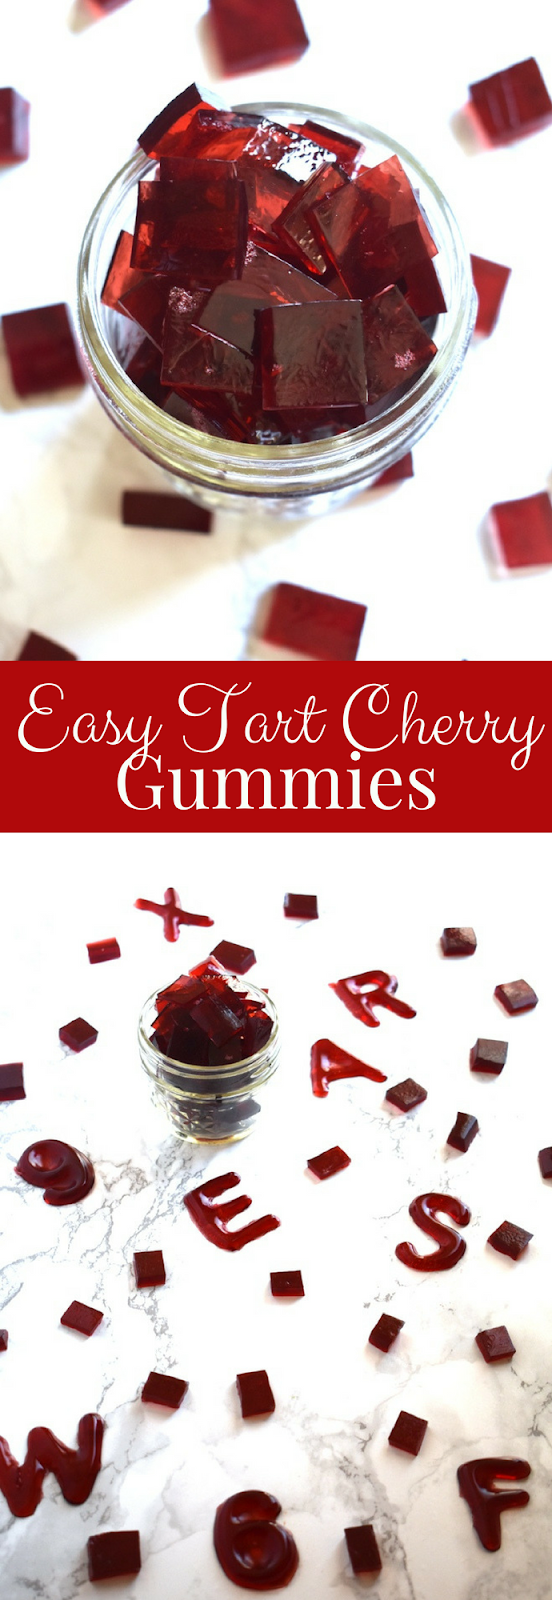 Easy Tart Cherry Gummies taste like sour candy, only require 3 ingredients, have no-added sugar, are ready in just 15 minutes, require no-cooking and are healthier than store bought gummies! www.nutritionistreviews.com